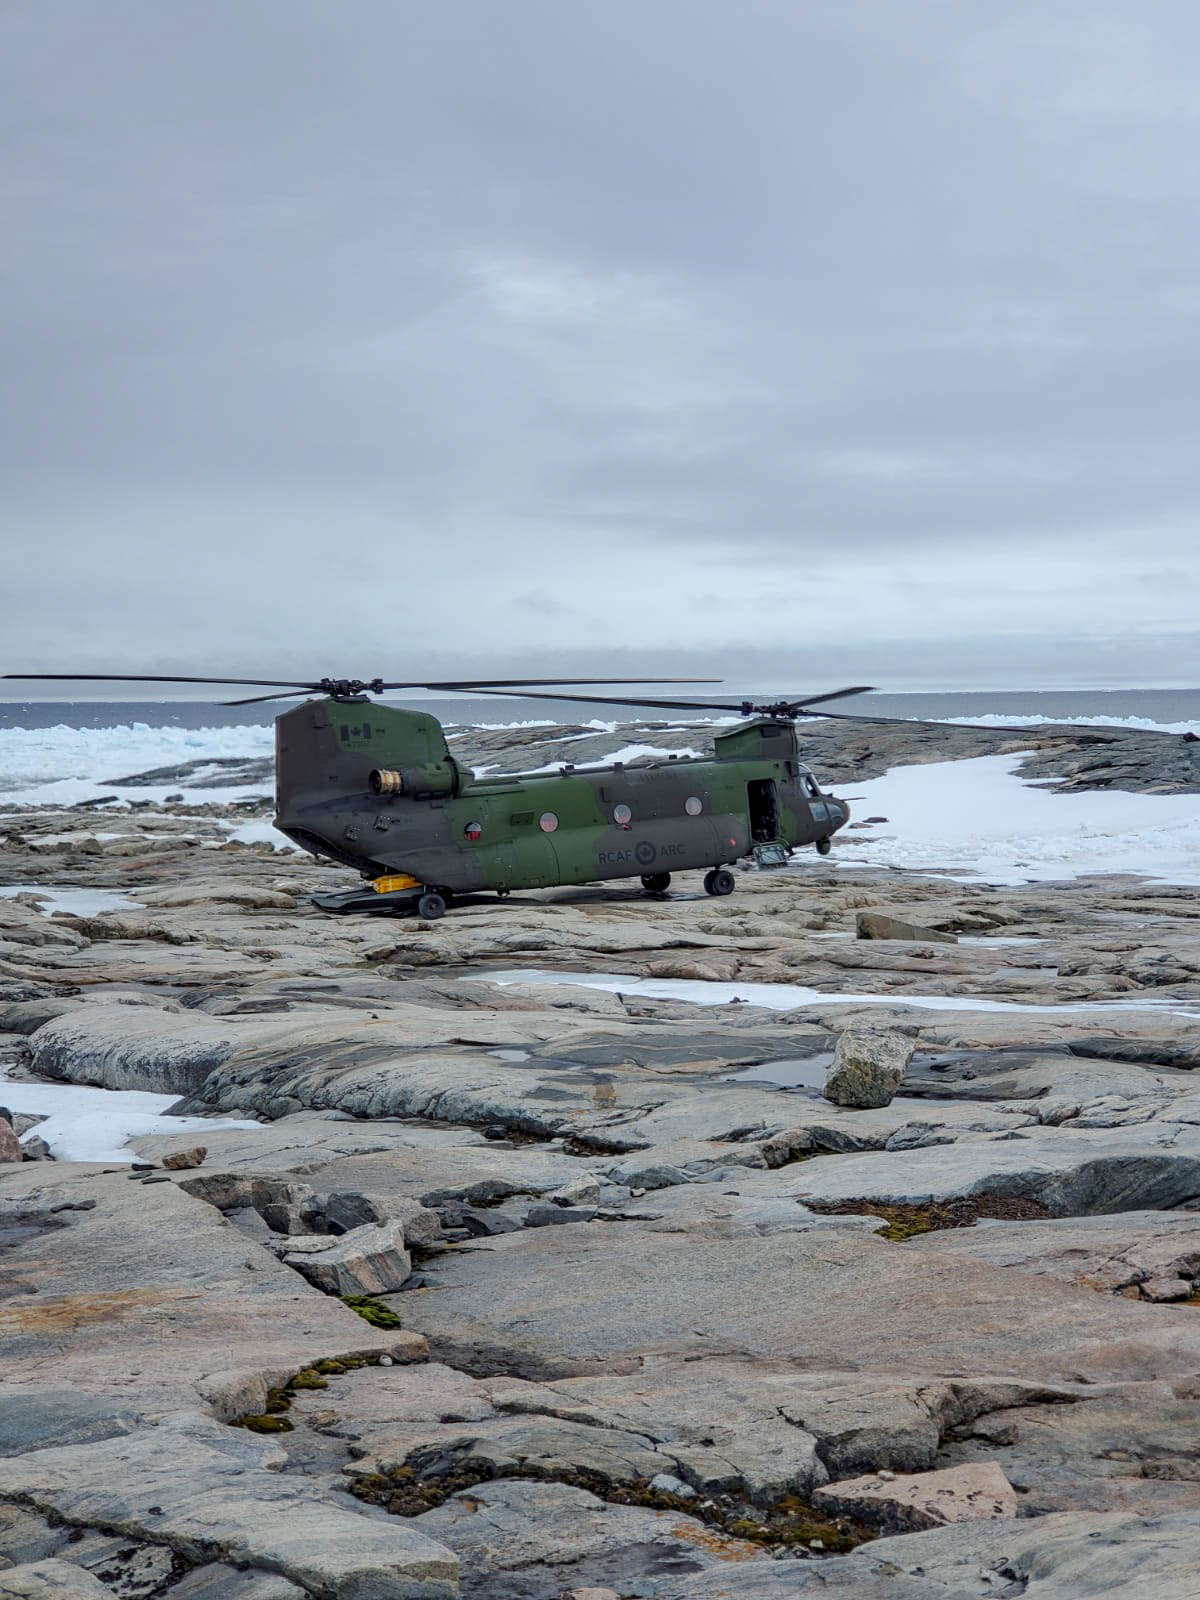 A big green and grey helicopter sits on rocks in an Arctic setting.